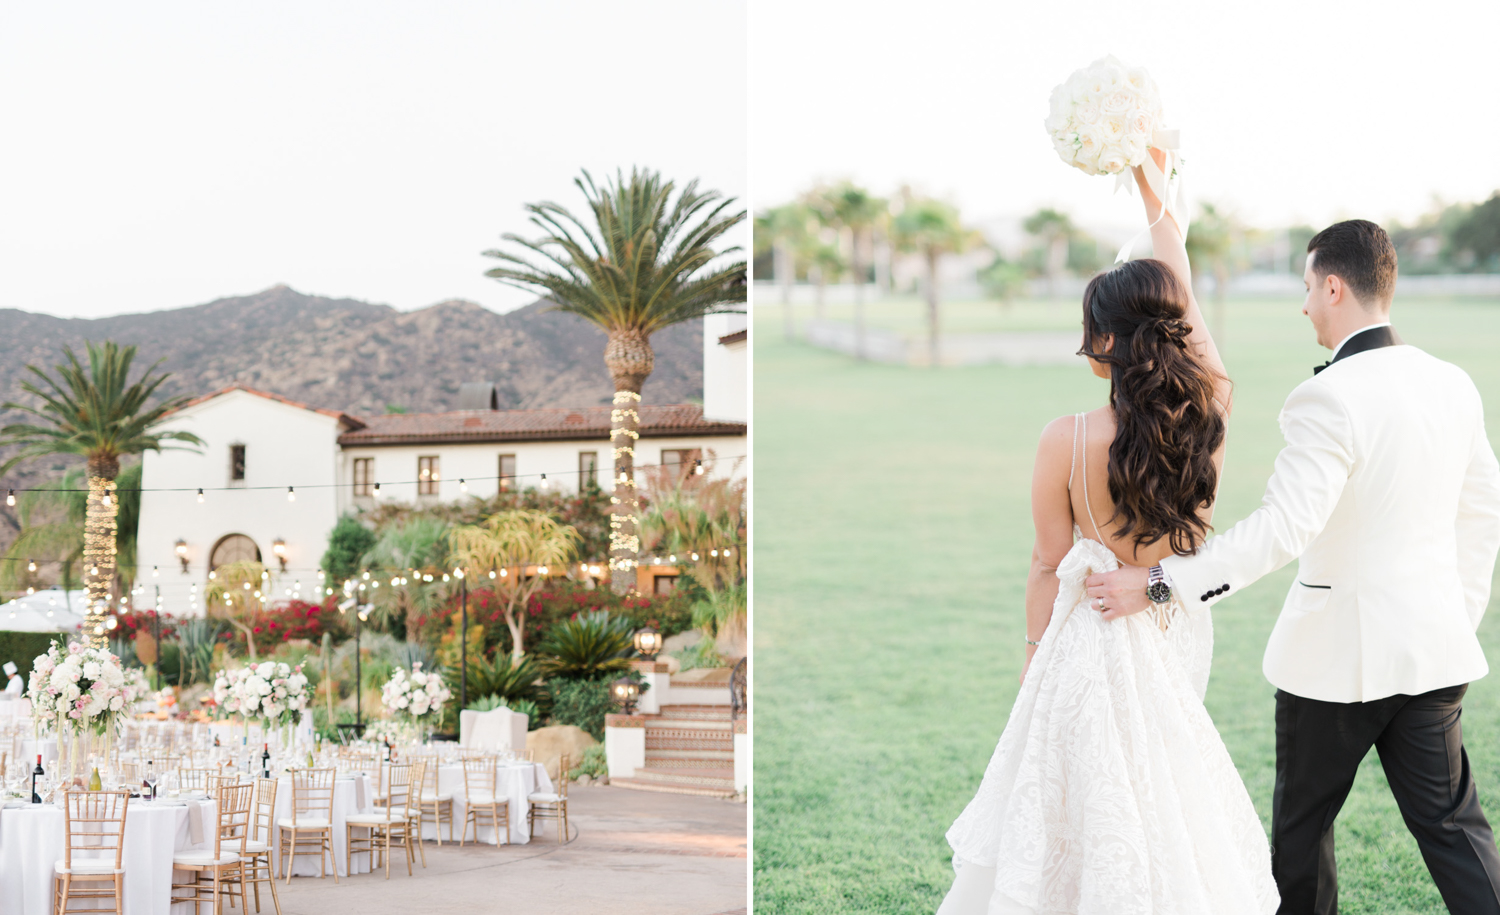 azer&michelle_hummingbird_nest_ranch_wedding_fine_art_photographer_los_angeles-38.jpg